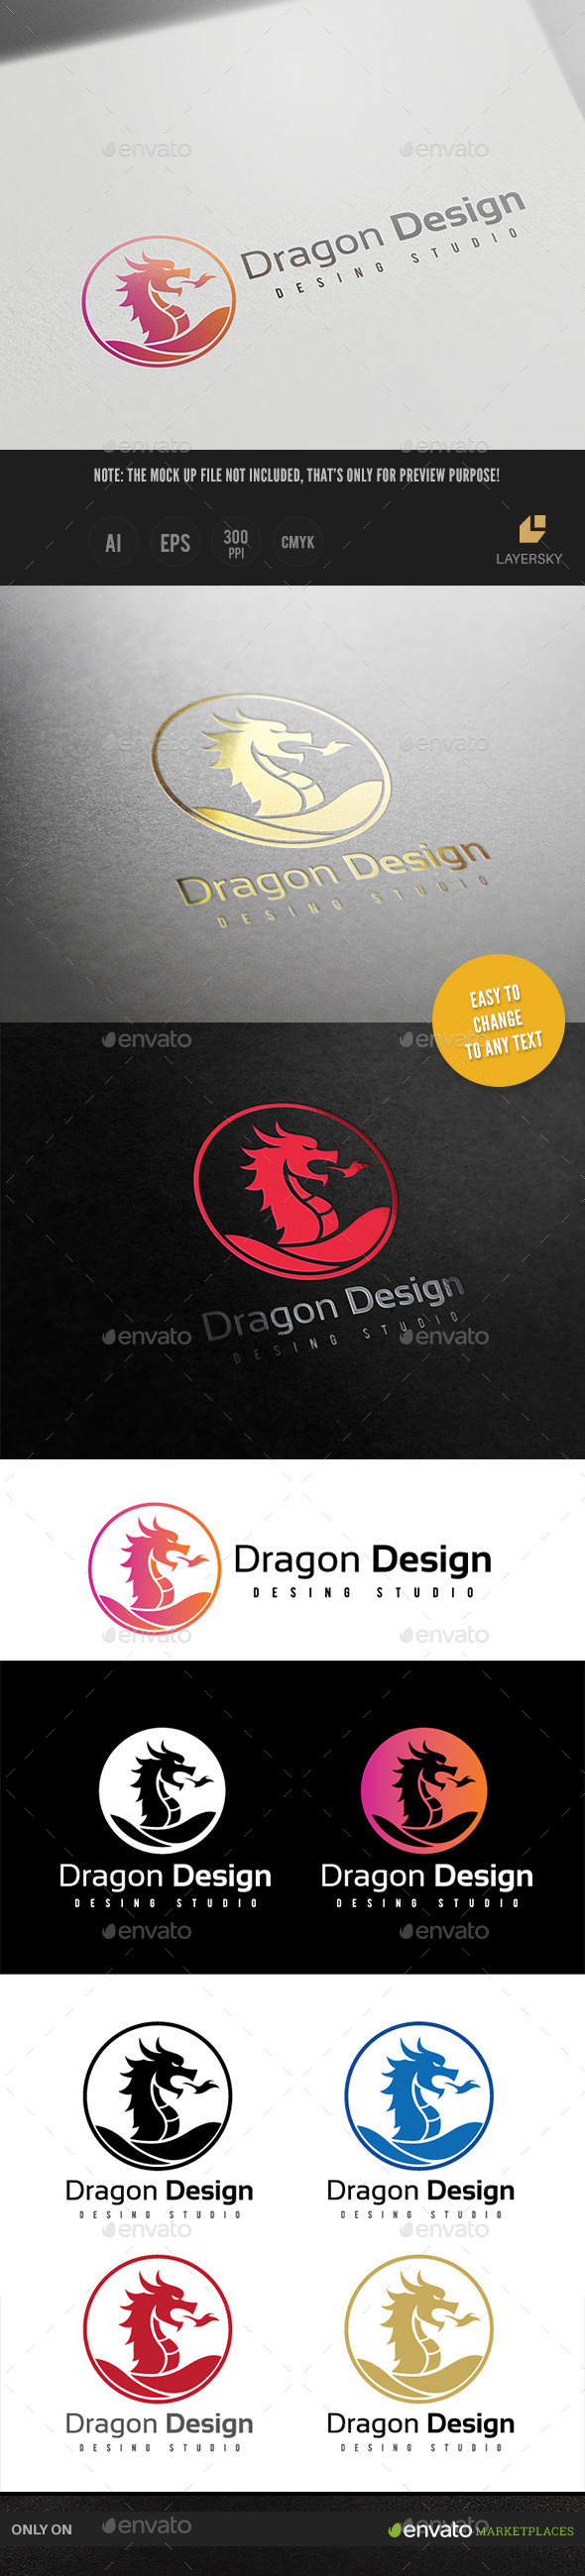 GraphicRiver Dragon Design 9641863